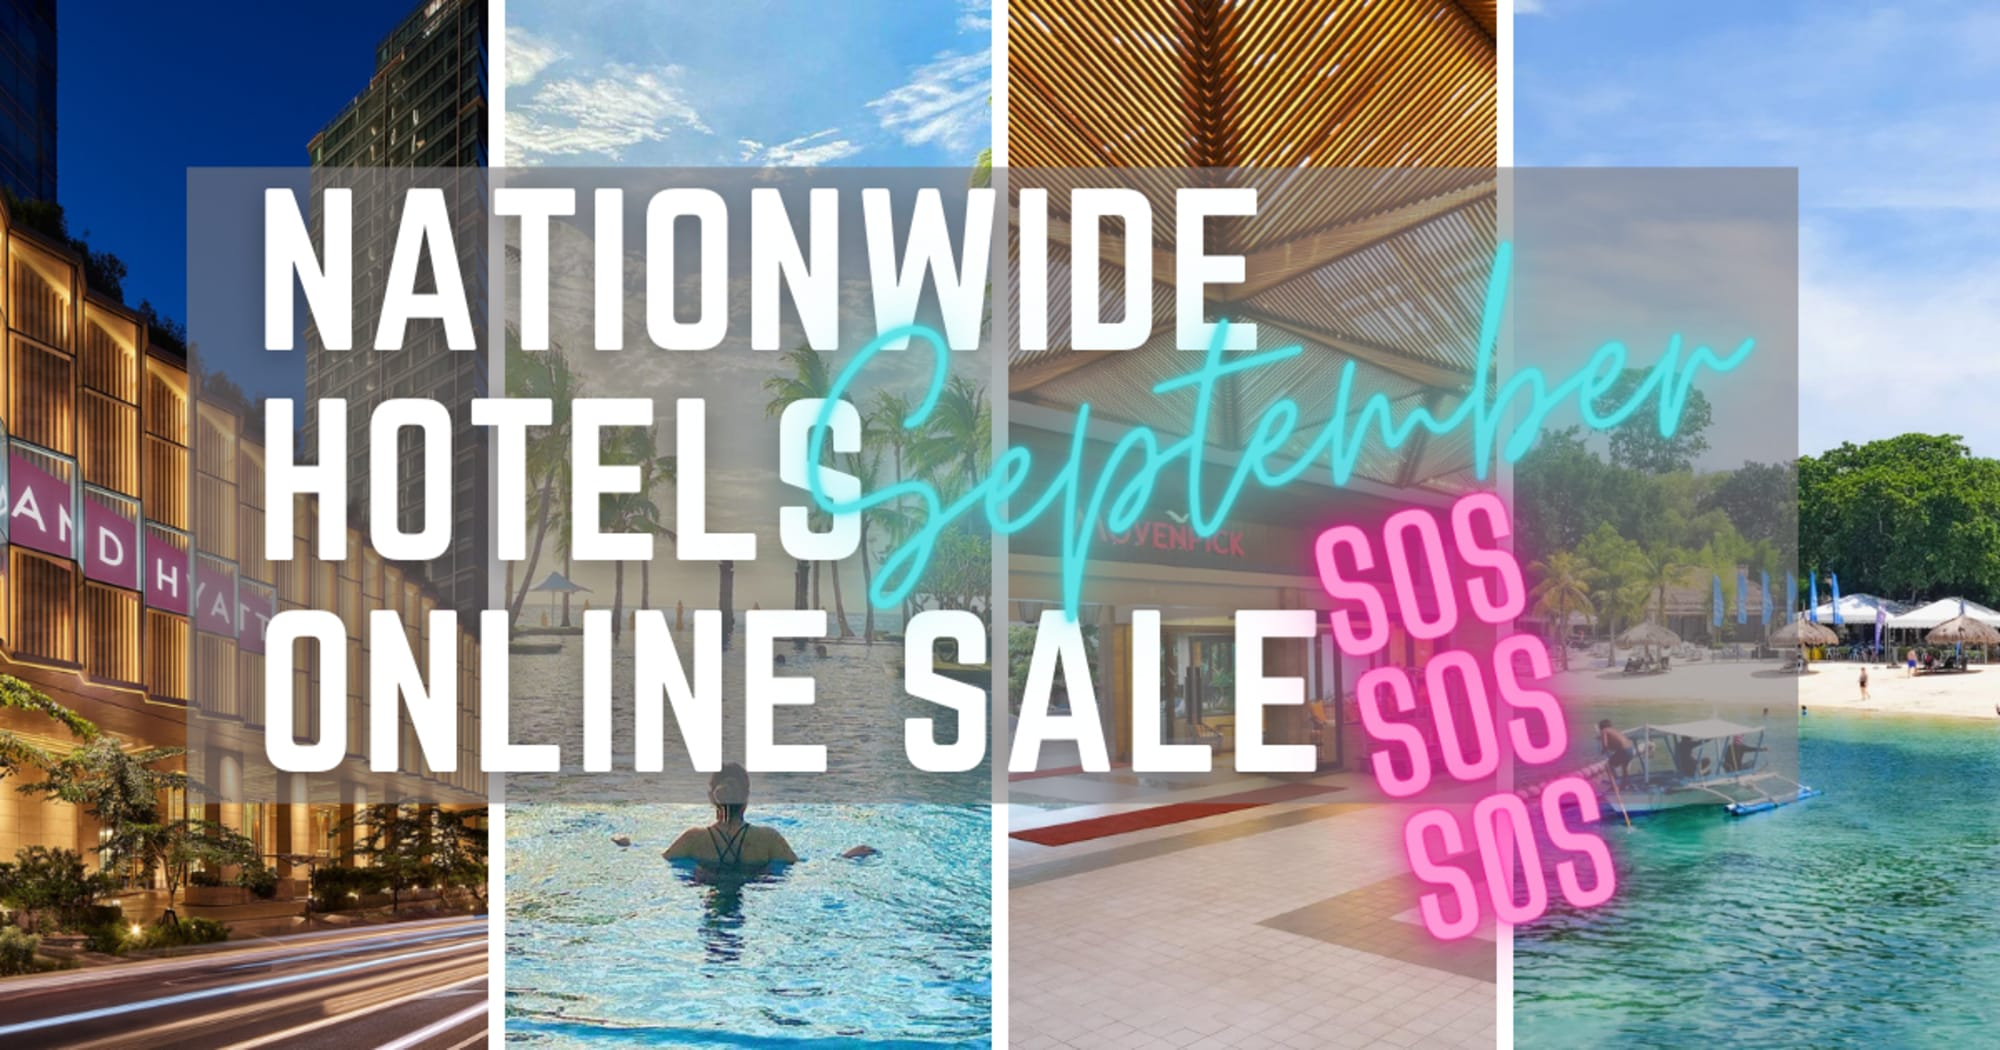 Boracay and other nationwide hotels will have the biggest online travel sale that's set to start tomorrow Sept. 15